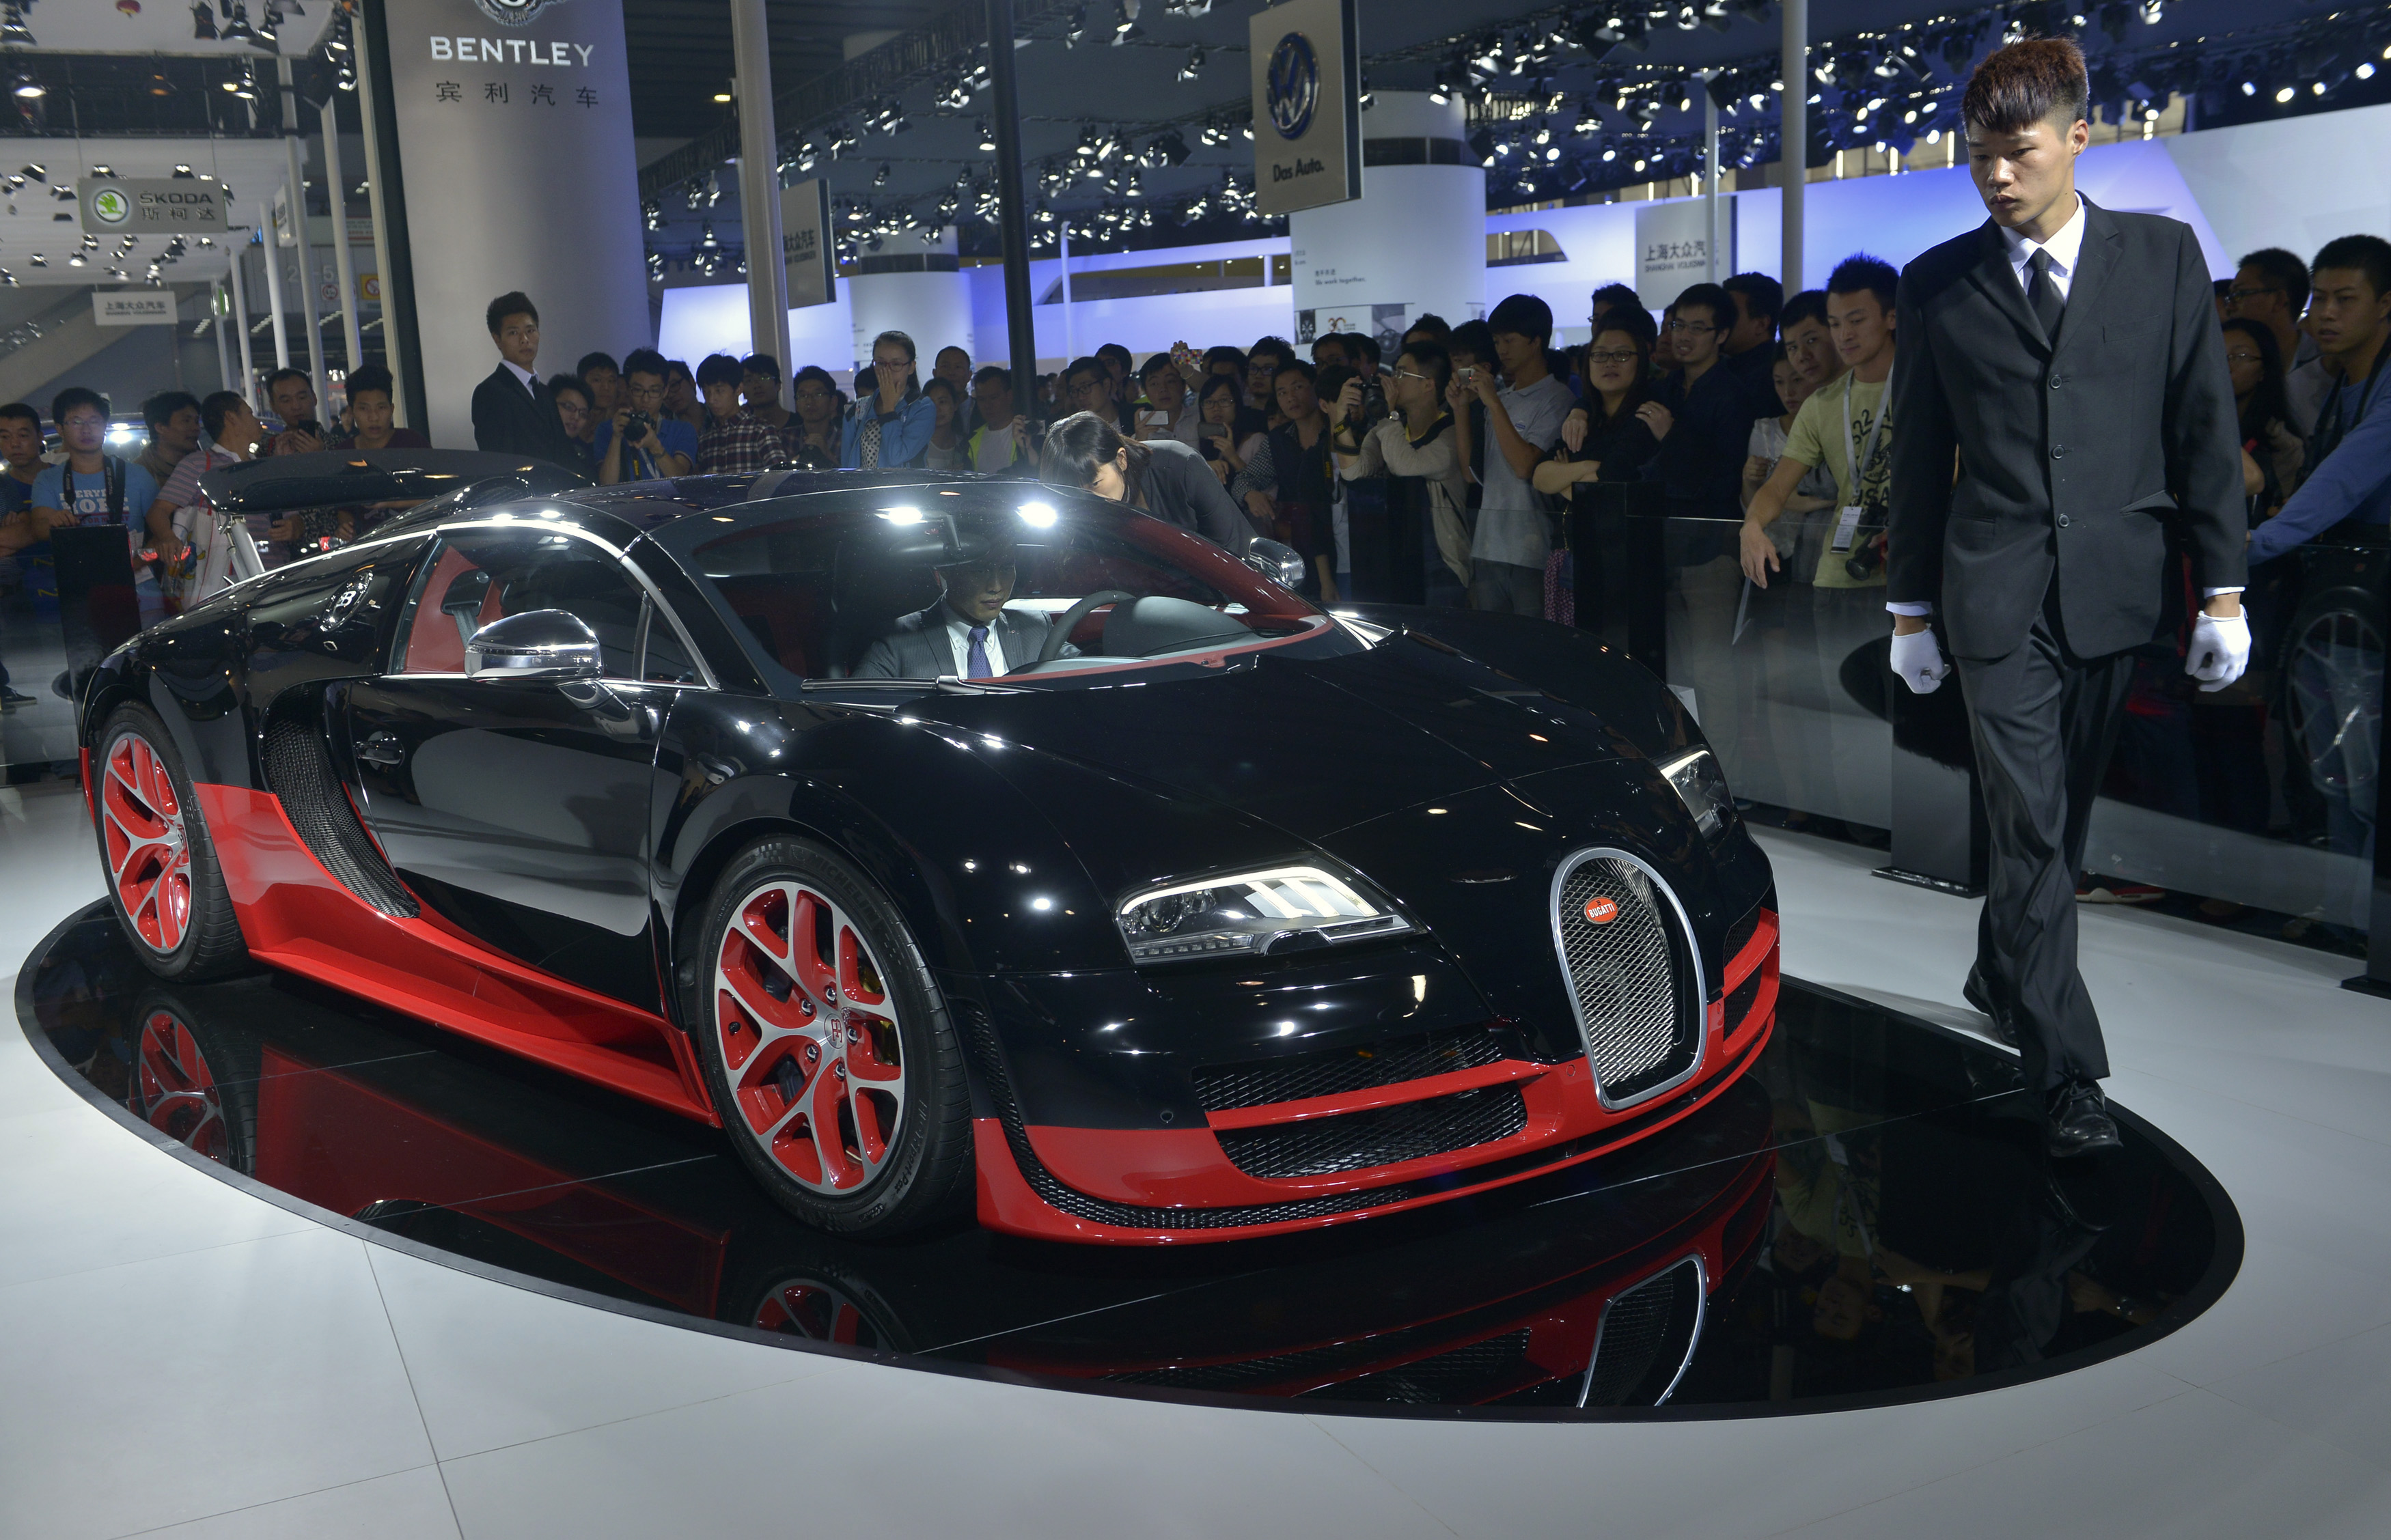 A site organizer walks by a Bugatti Veyron at the Guangzhou International Automobile Exhibition in Guangzhou, Guangdong province, November 22, 2013. Luxury car dealers are resorting to offering customers massages, mini-golf and other gimmicks, hoping this will give them an edge in a ferociously competitive Chinese market where brand loyalty is less common than in the West. REUTERS/Stringer